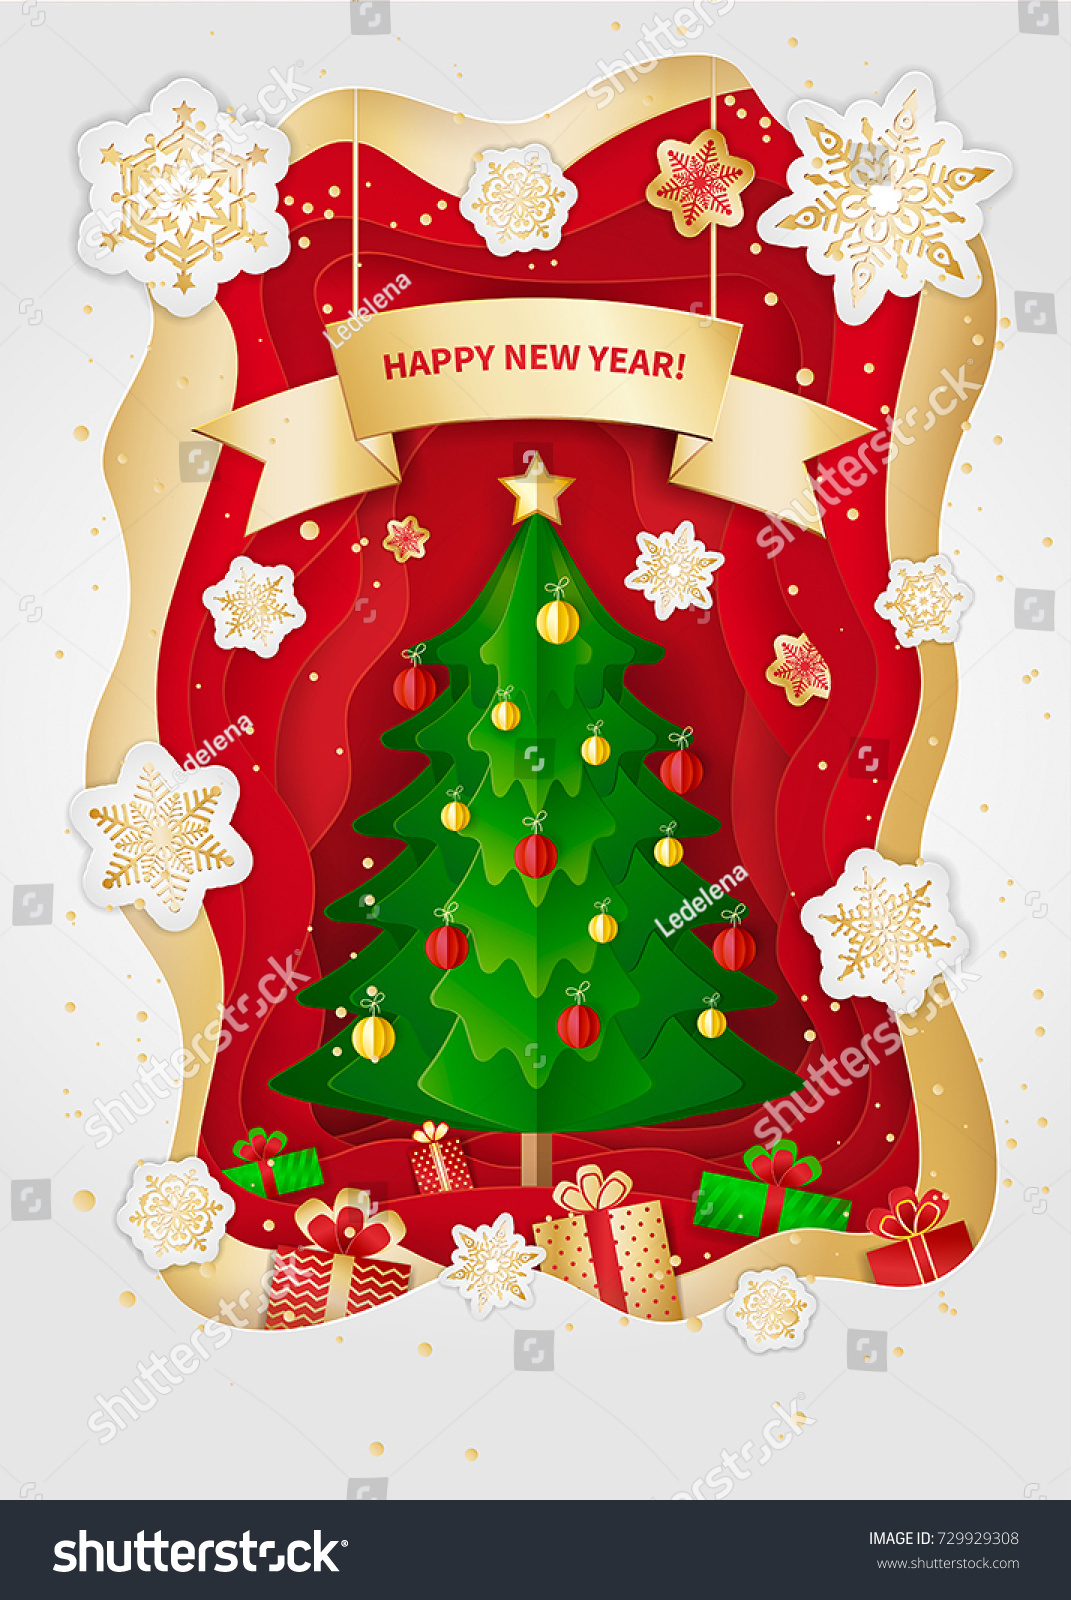 New Year Christmas Greeting Card Design Stock Vector 729929308